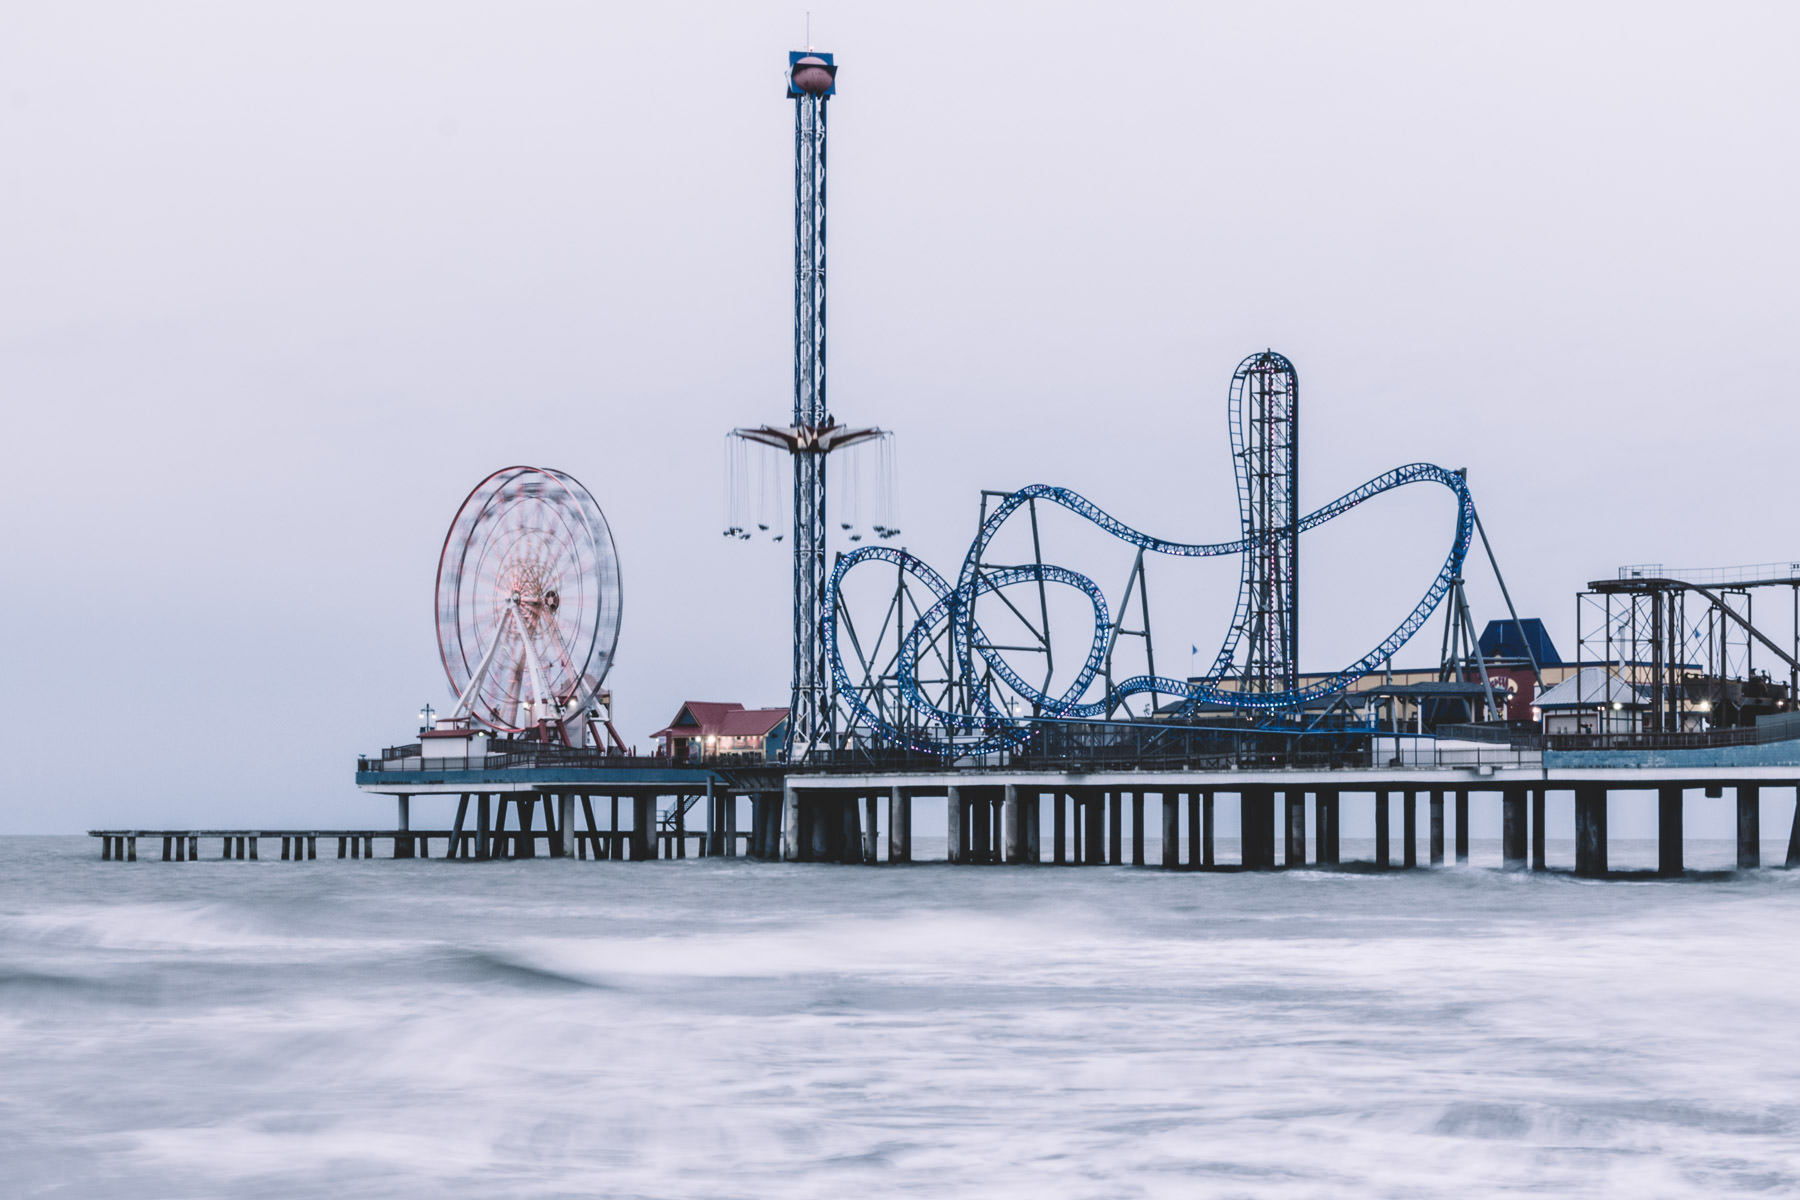 Galveston, Texas' Historic Pleasure Pier reaches out into the cold wind and overcast skies of the Gulf of Mexico.